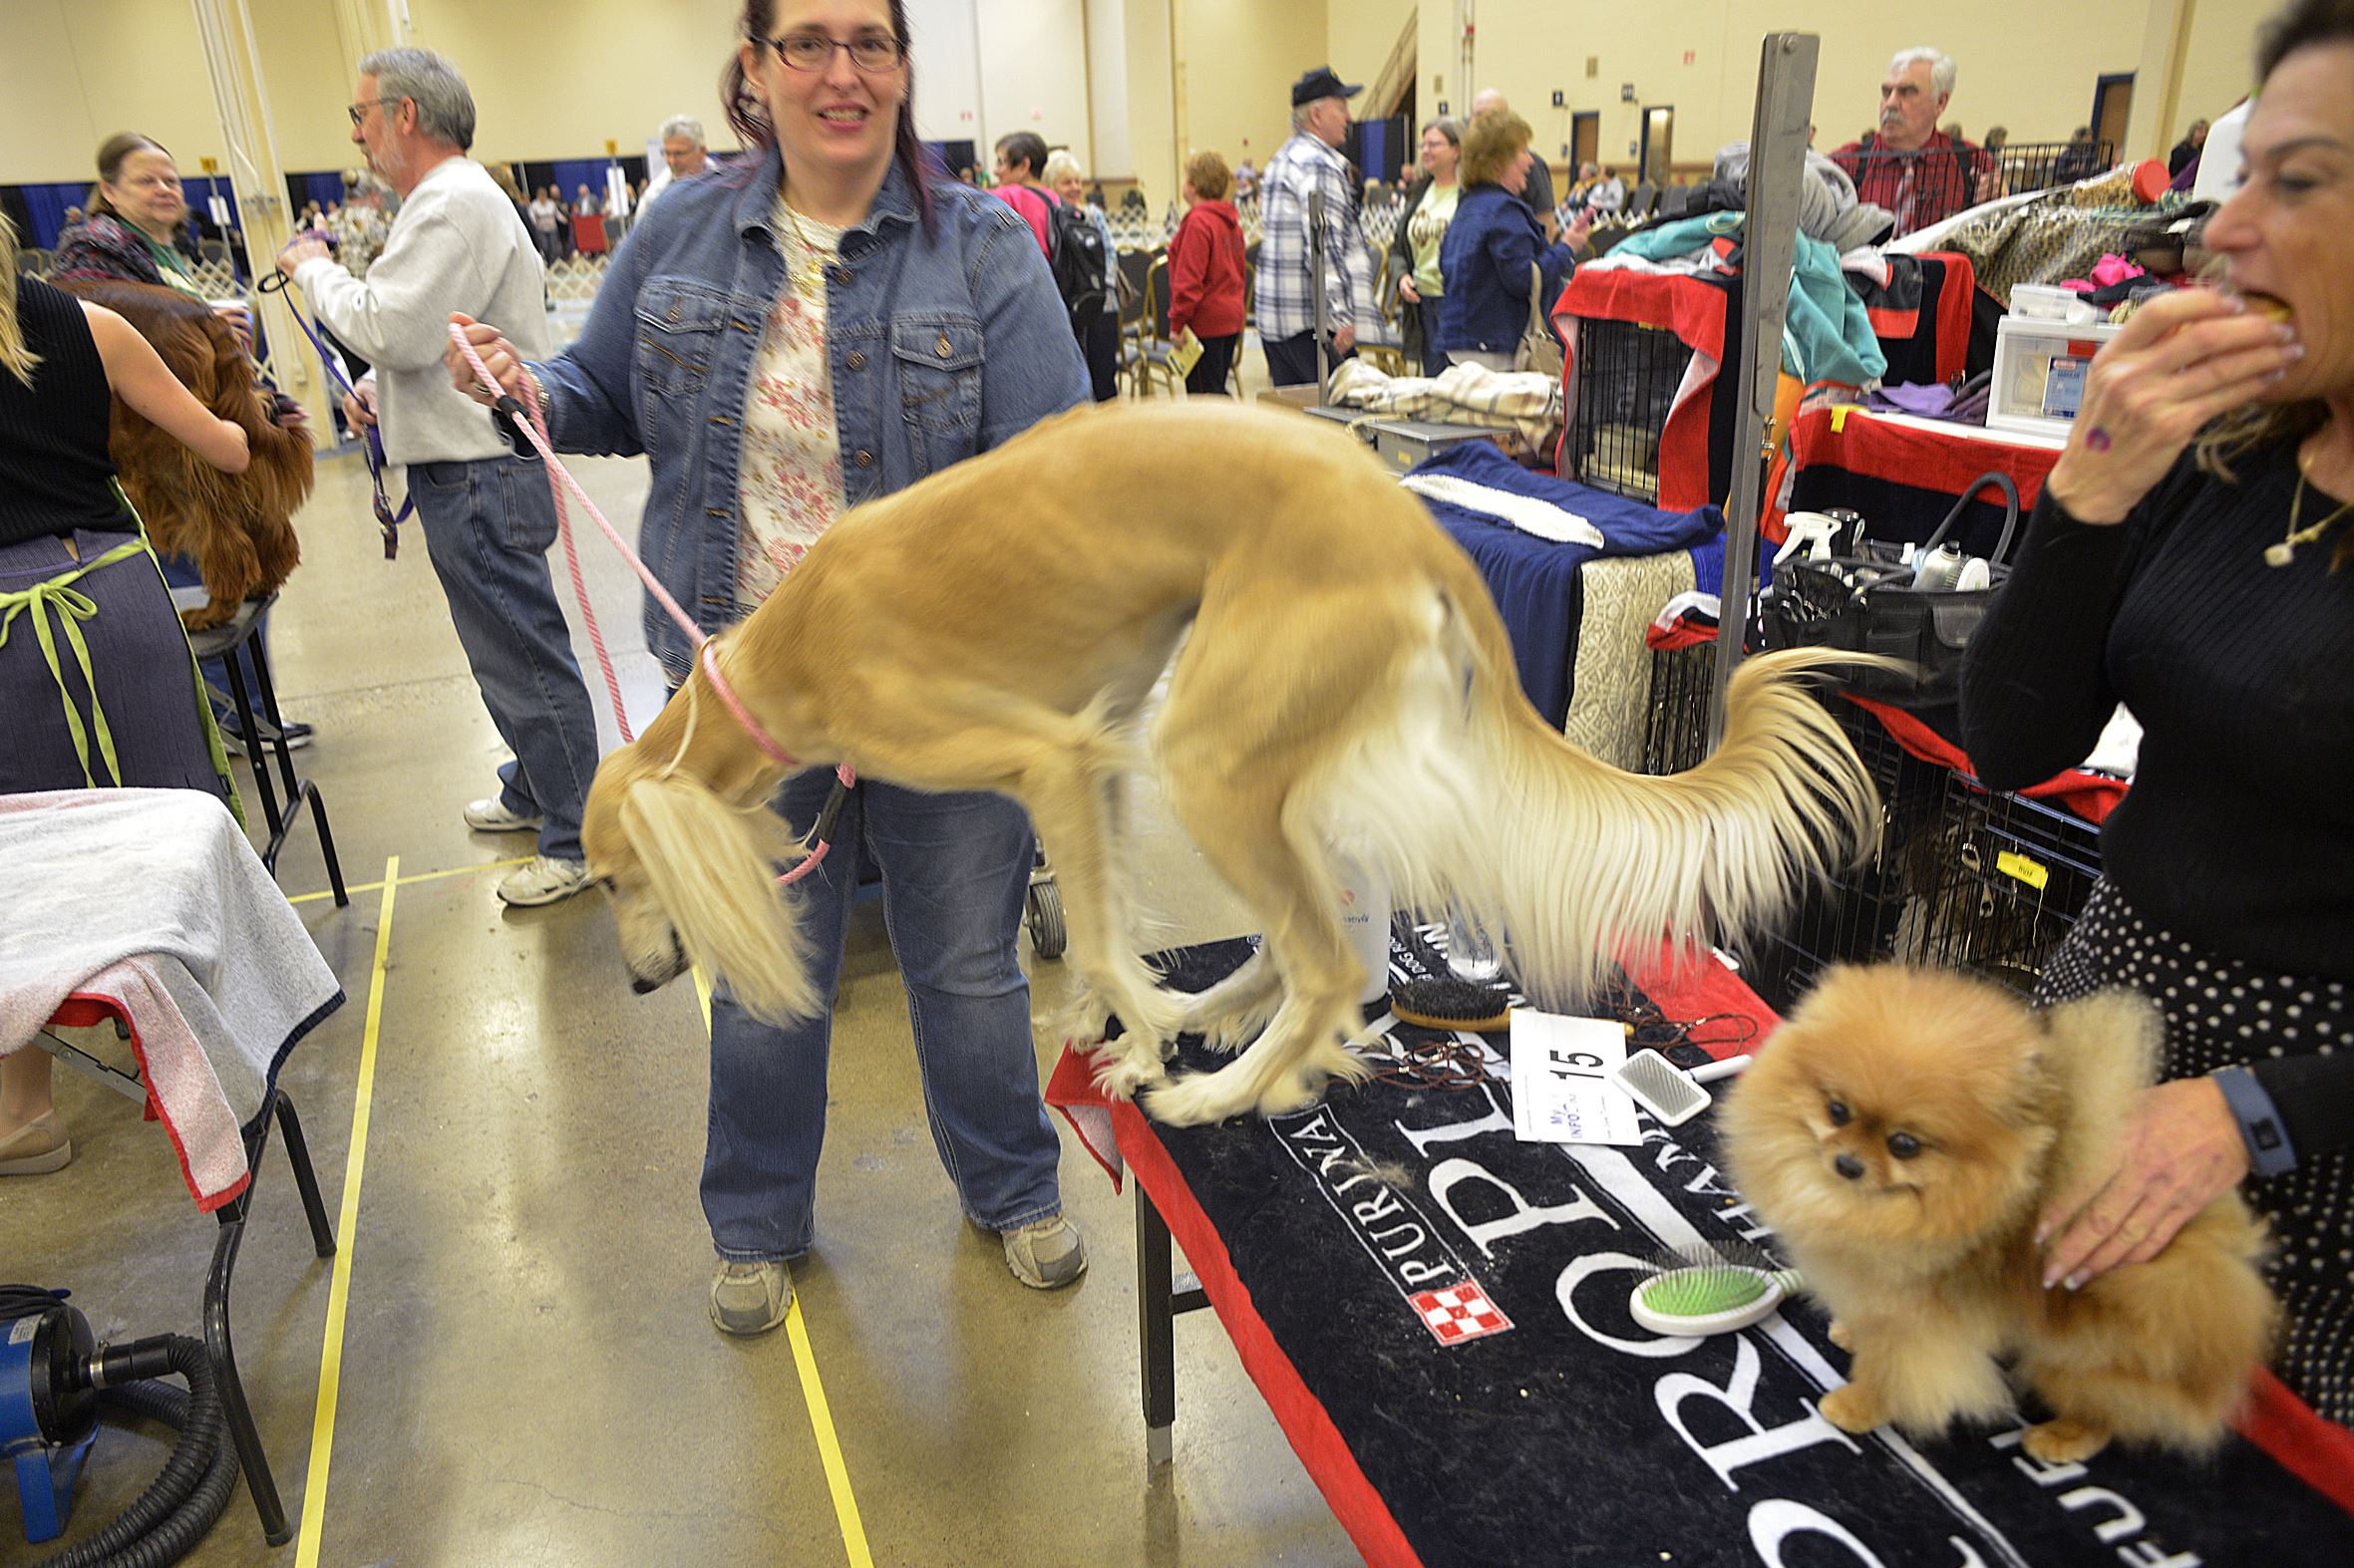 20170402lrpadogshowbestshow Snapple jumps off a table after visiting with the Pomeranian named Letta on Sunday.